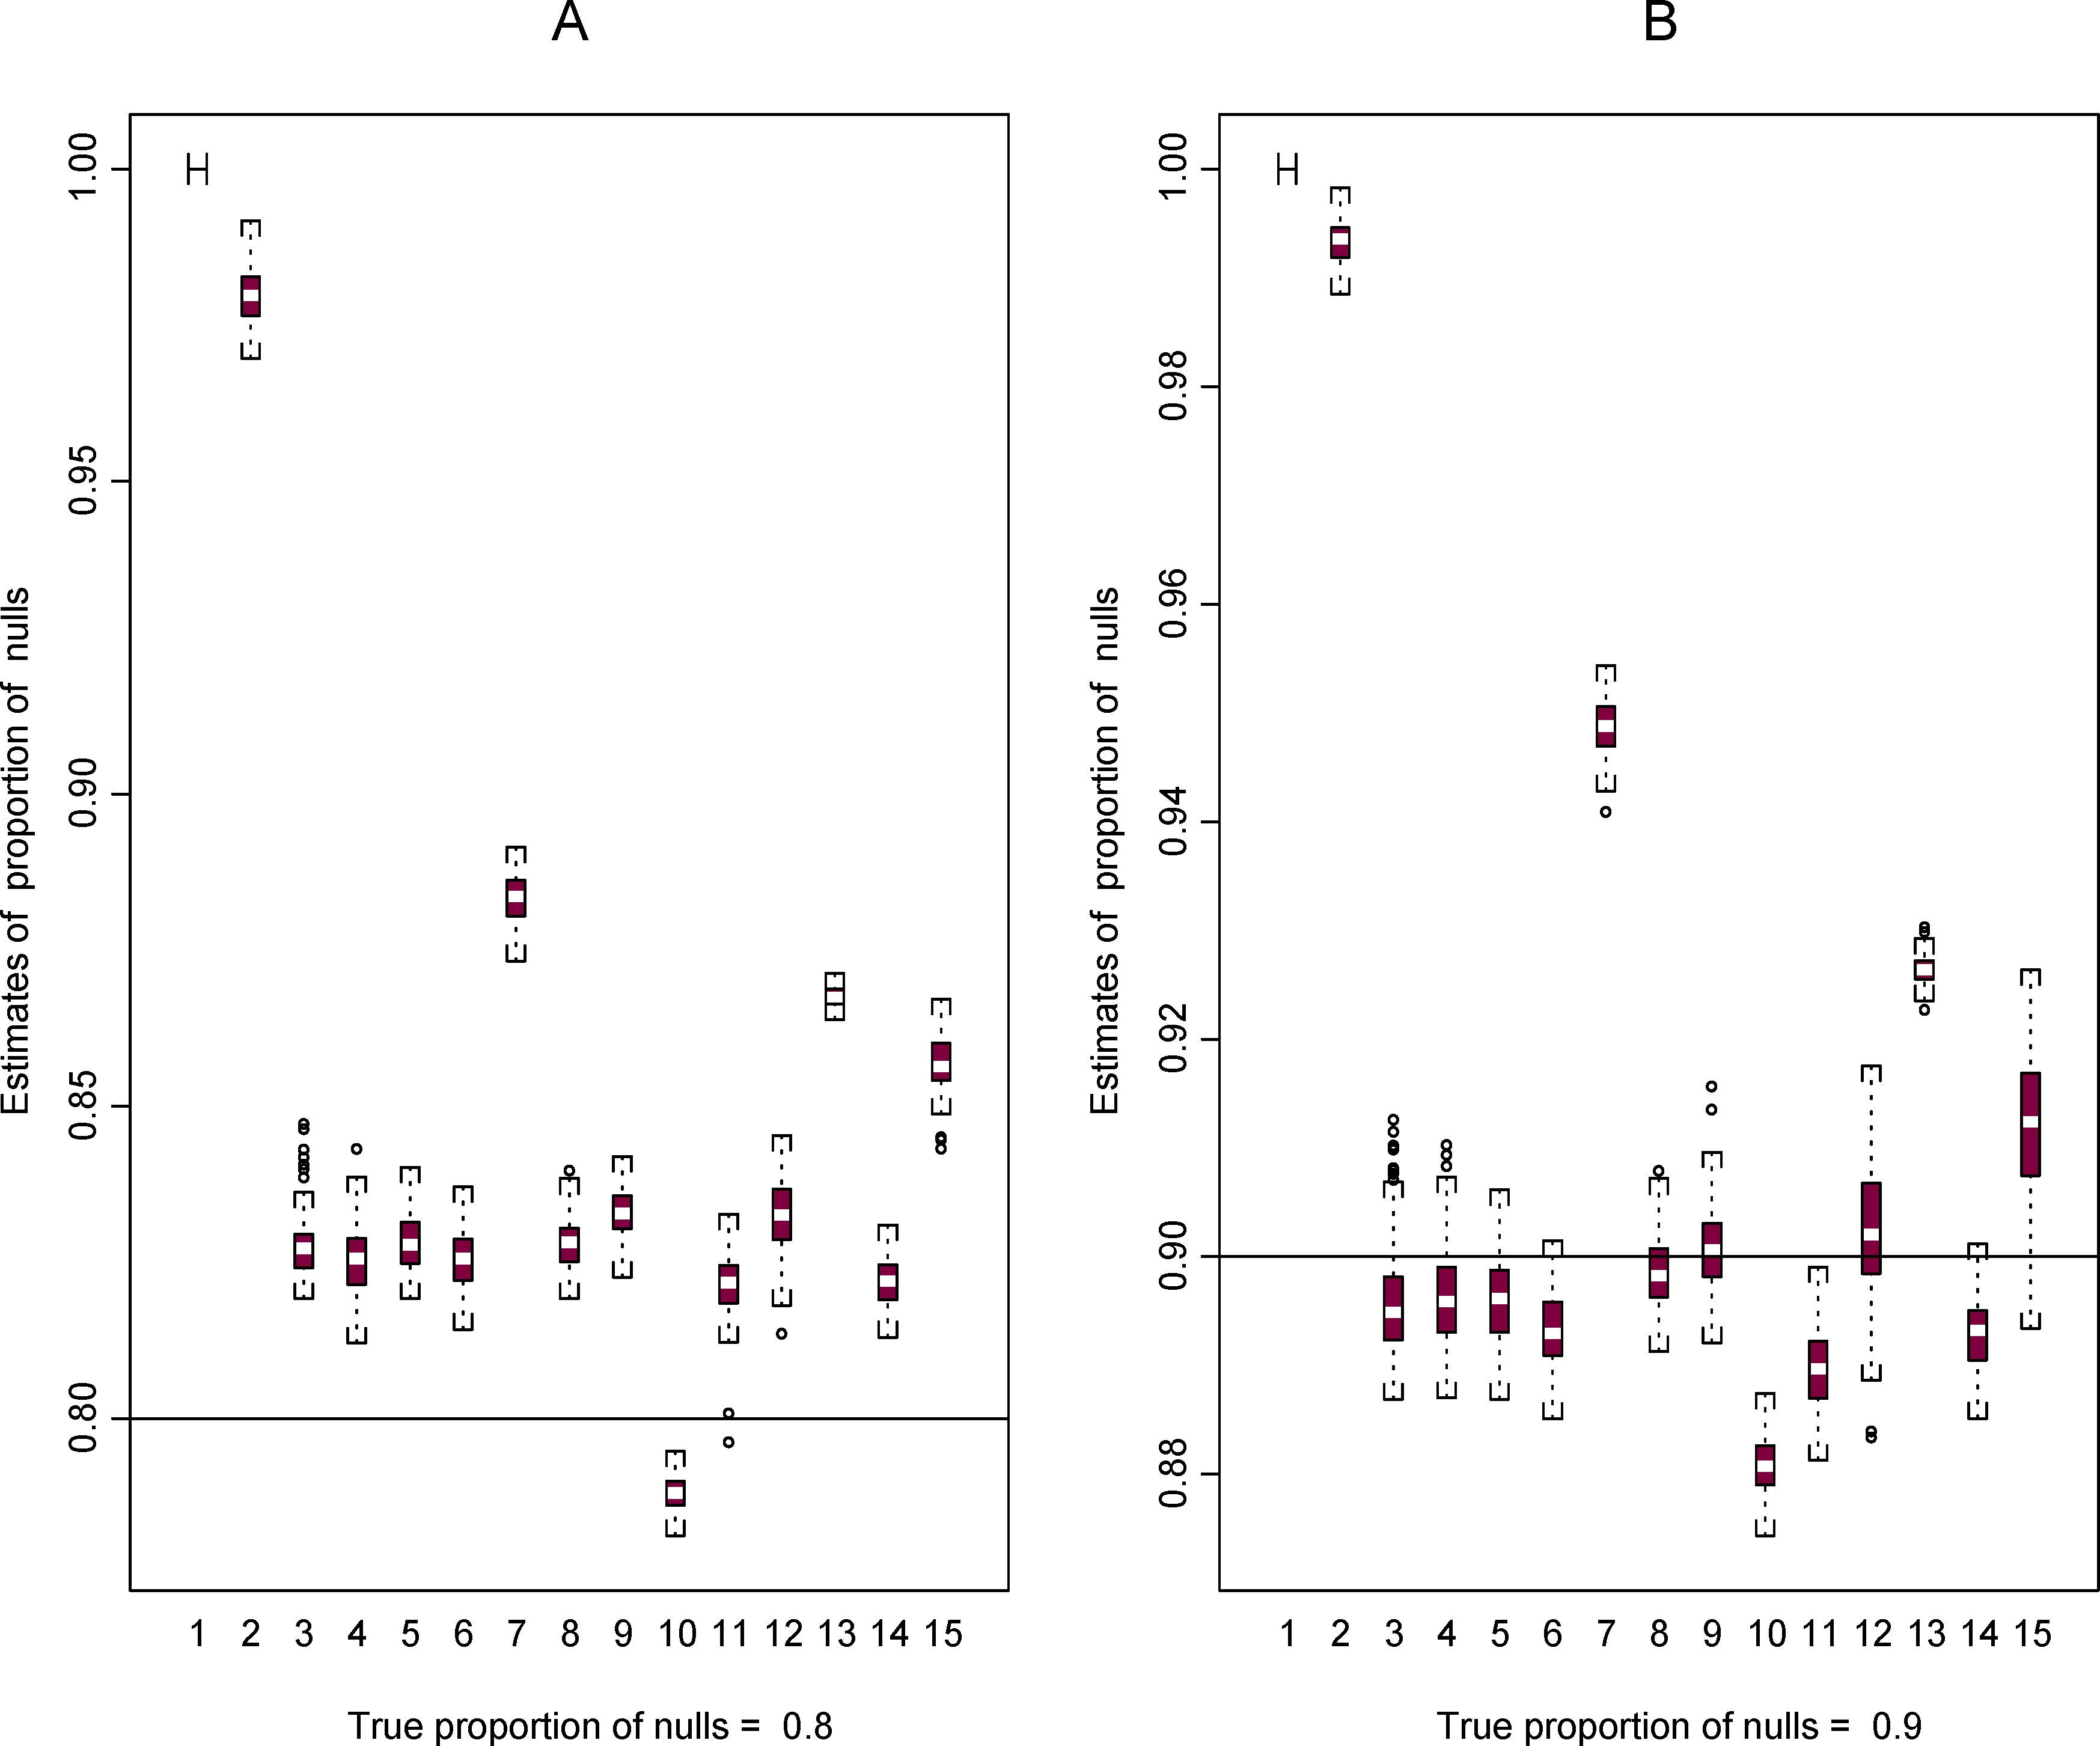 Boxplots for estimates of π<sub>0</sub> from 100 plasmodes based on data set 2 for the 15 methods.